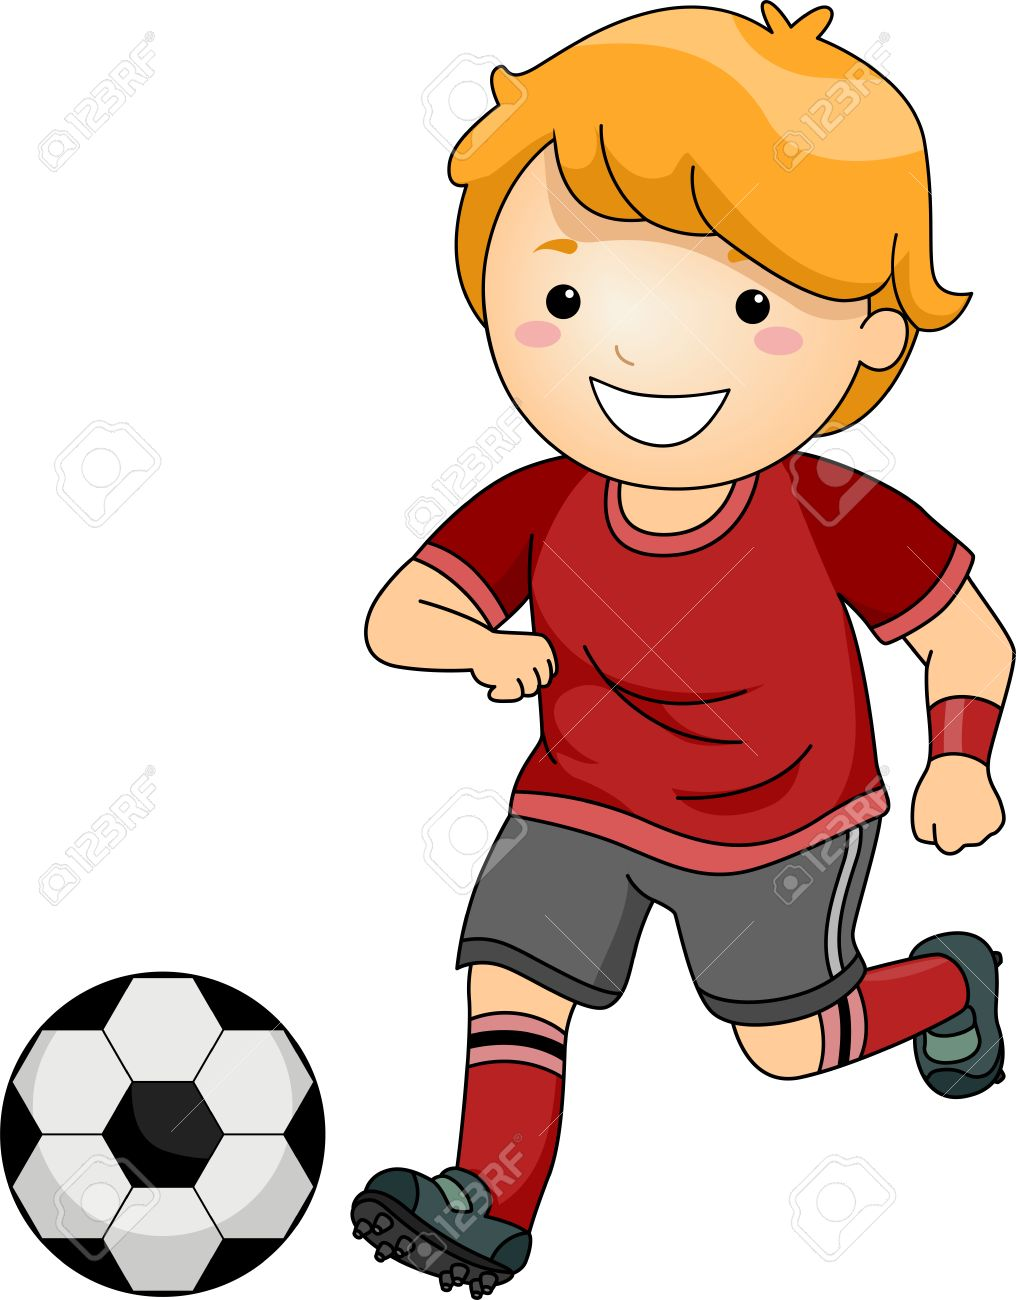 illustration of a little boy in soccer gear about to kick a soccer rh 123rf com kickball clipart black and white